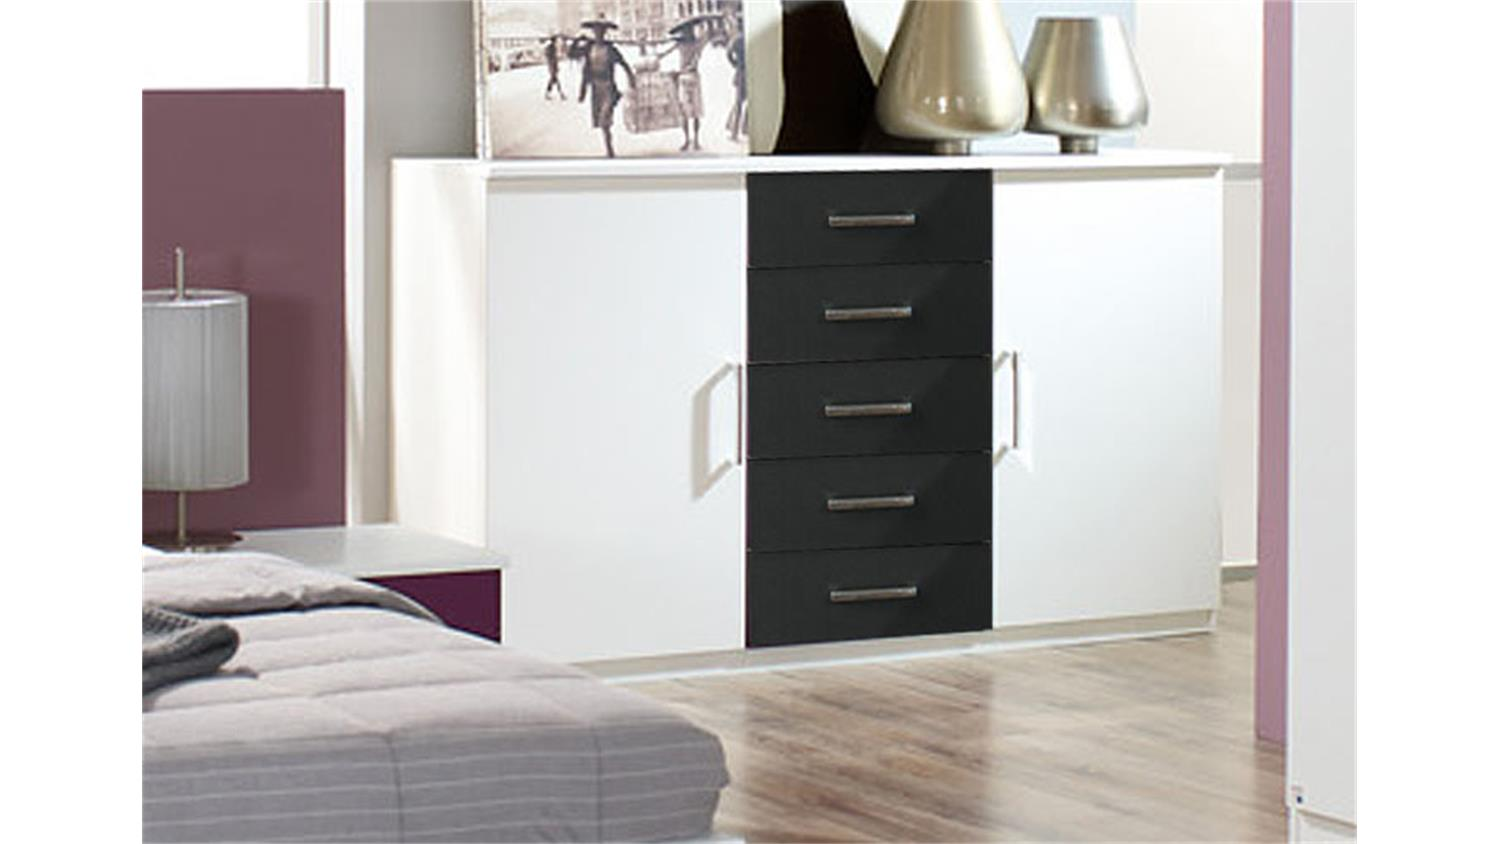 schlafzimmer set burano in wei und grau metallic 4 teilig. Black Bedroom Furniture Sets. Home Design Ideas